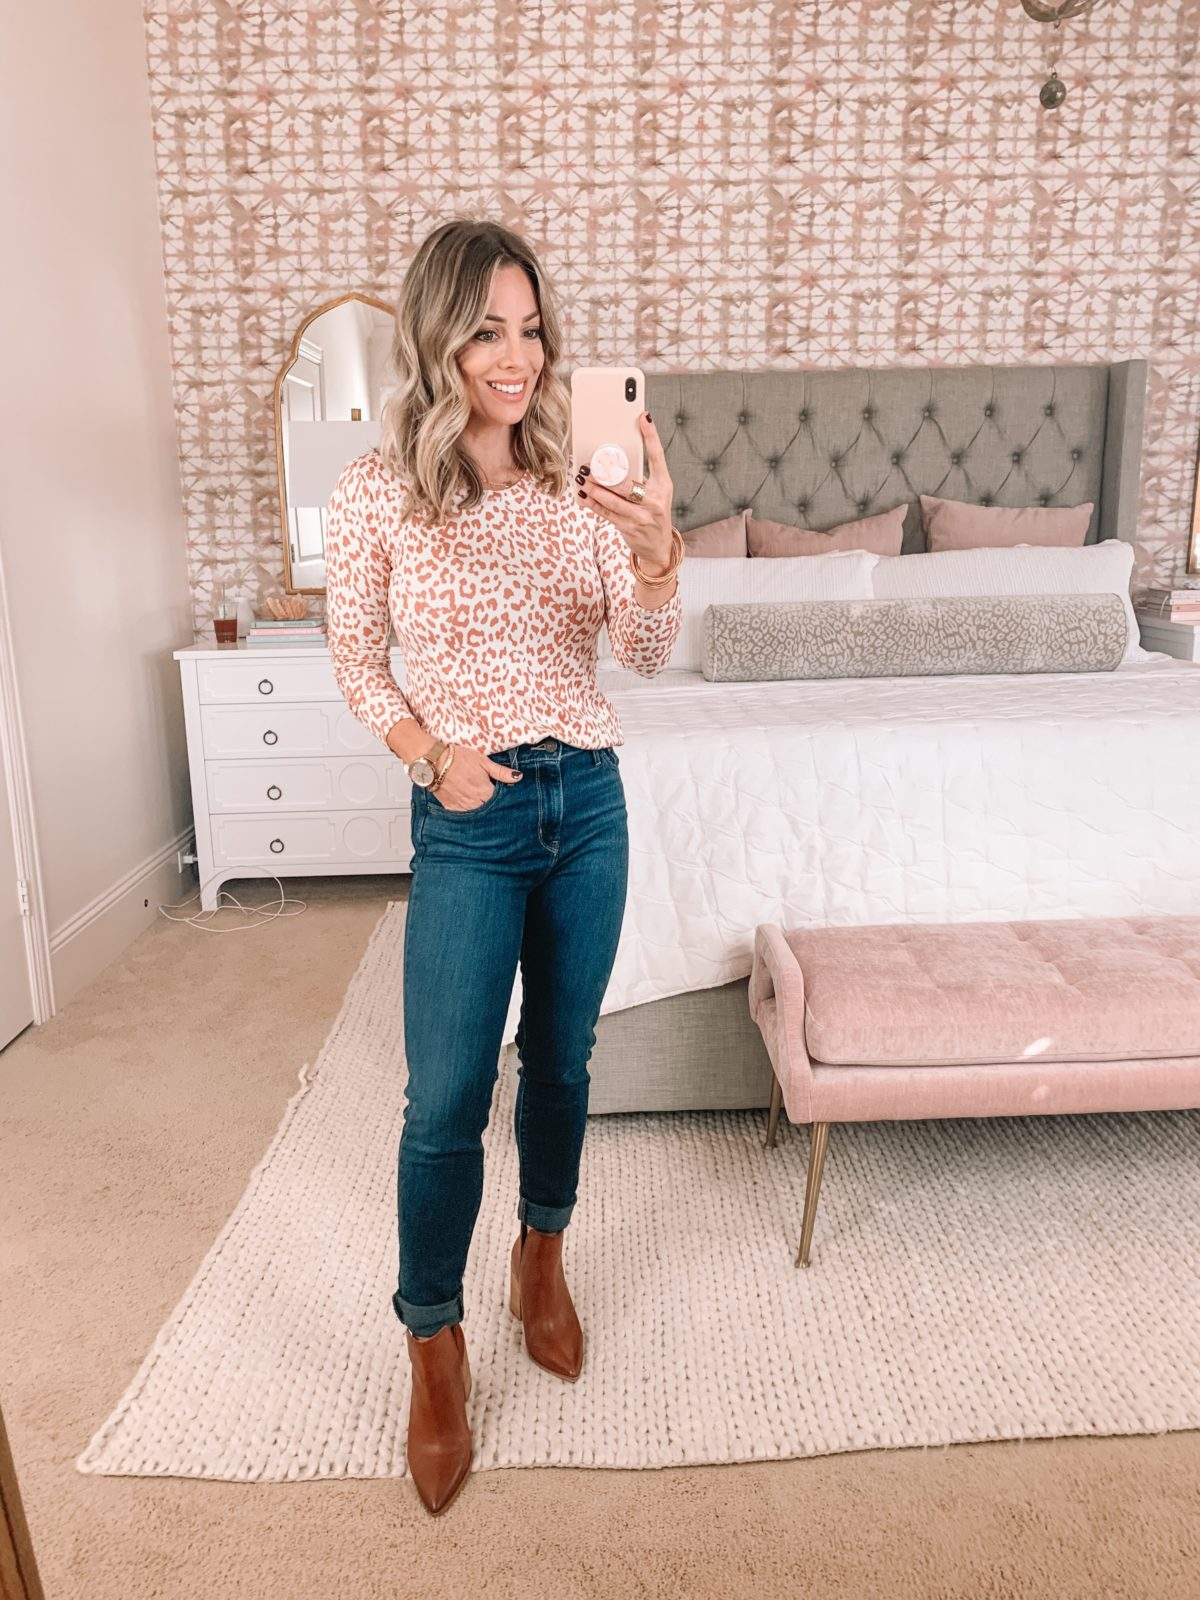 Amazon Fashion Faves, Orange Leopard Print Top, Skinny Jeans, Booties